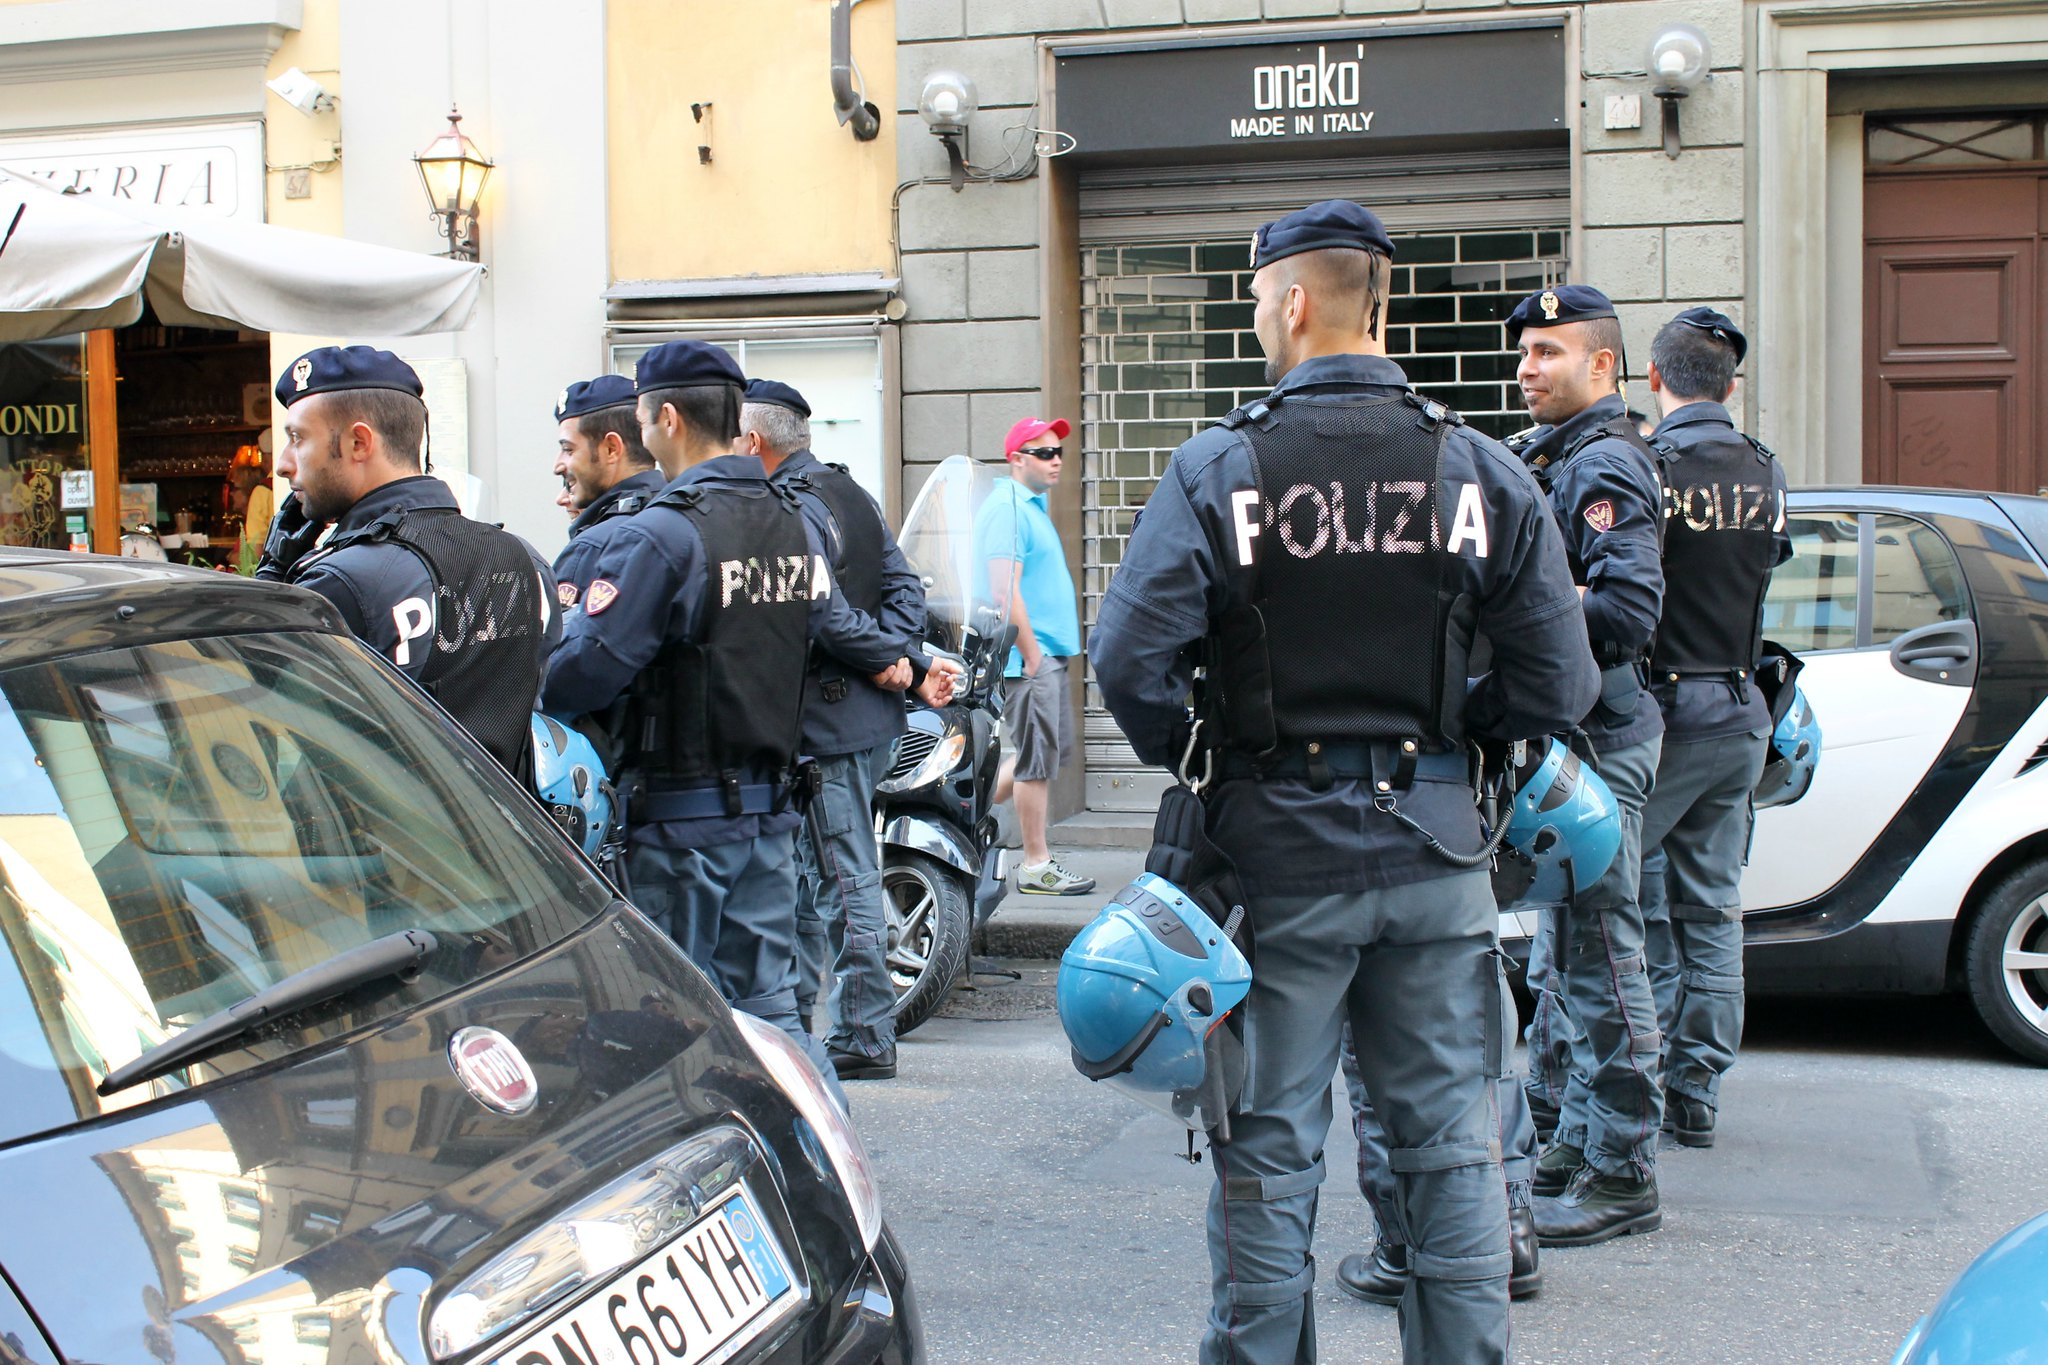 police in Florence